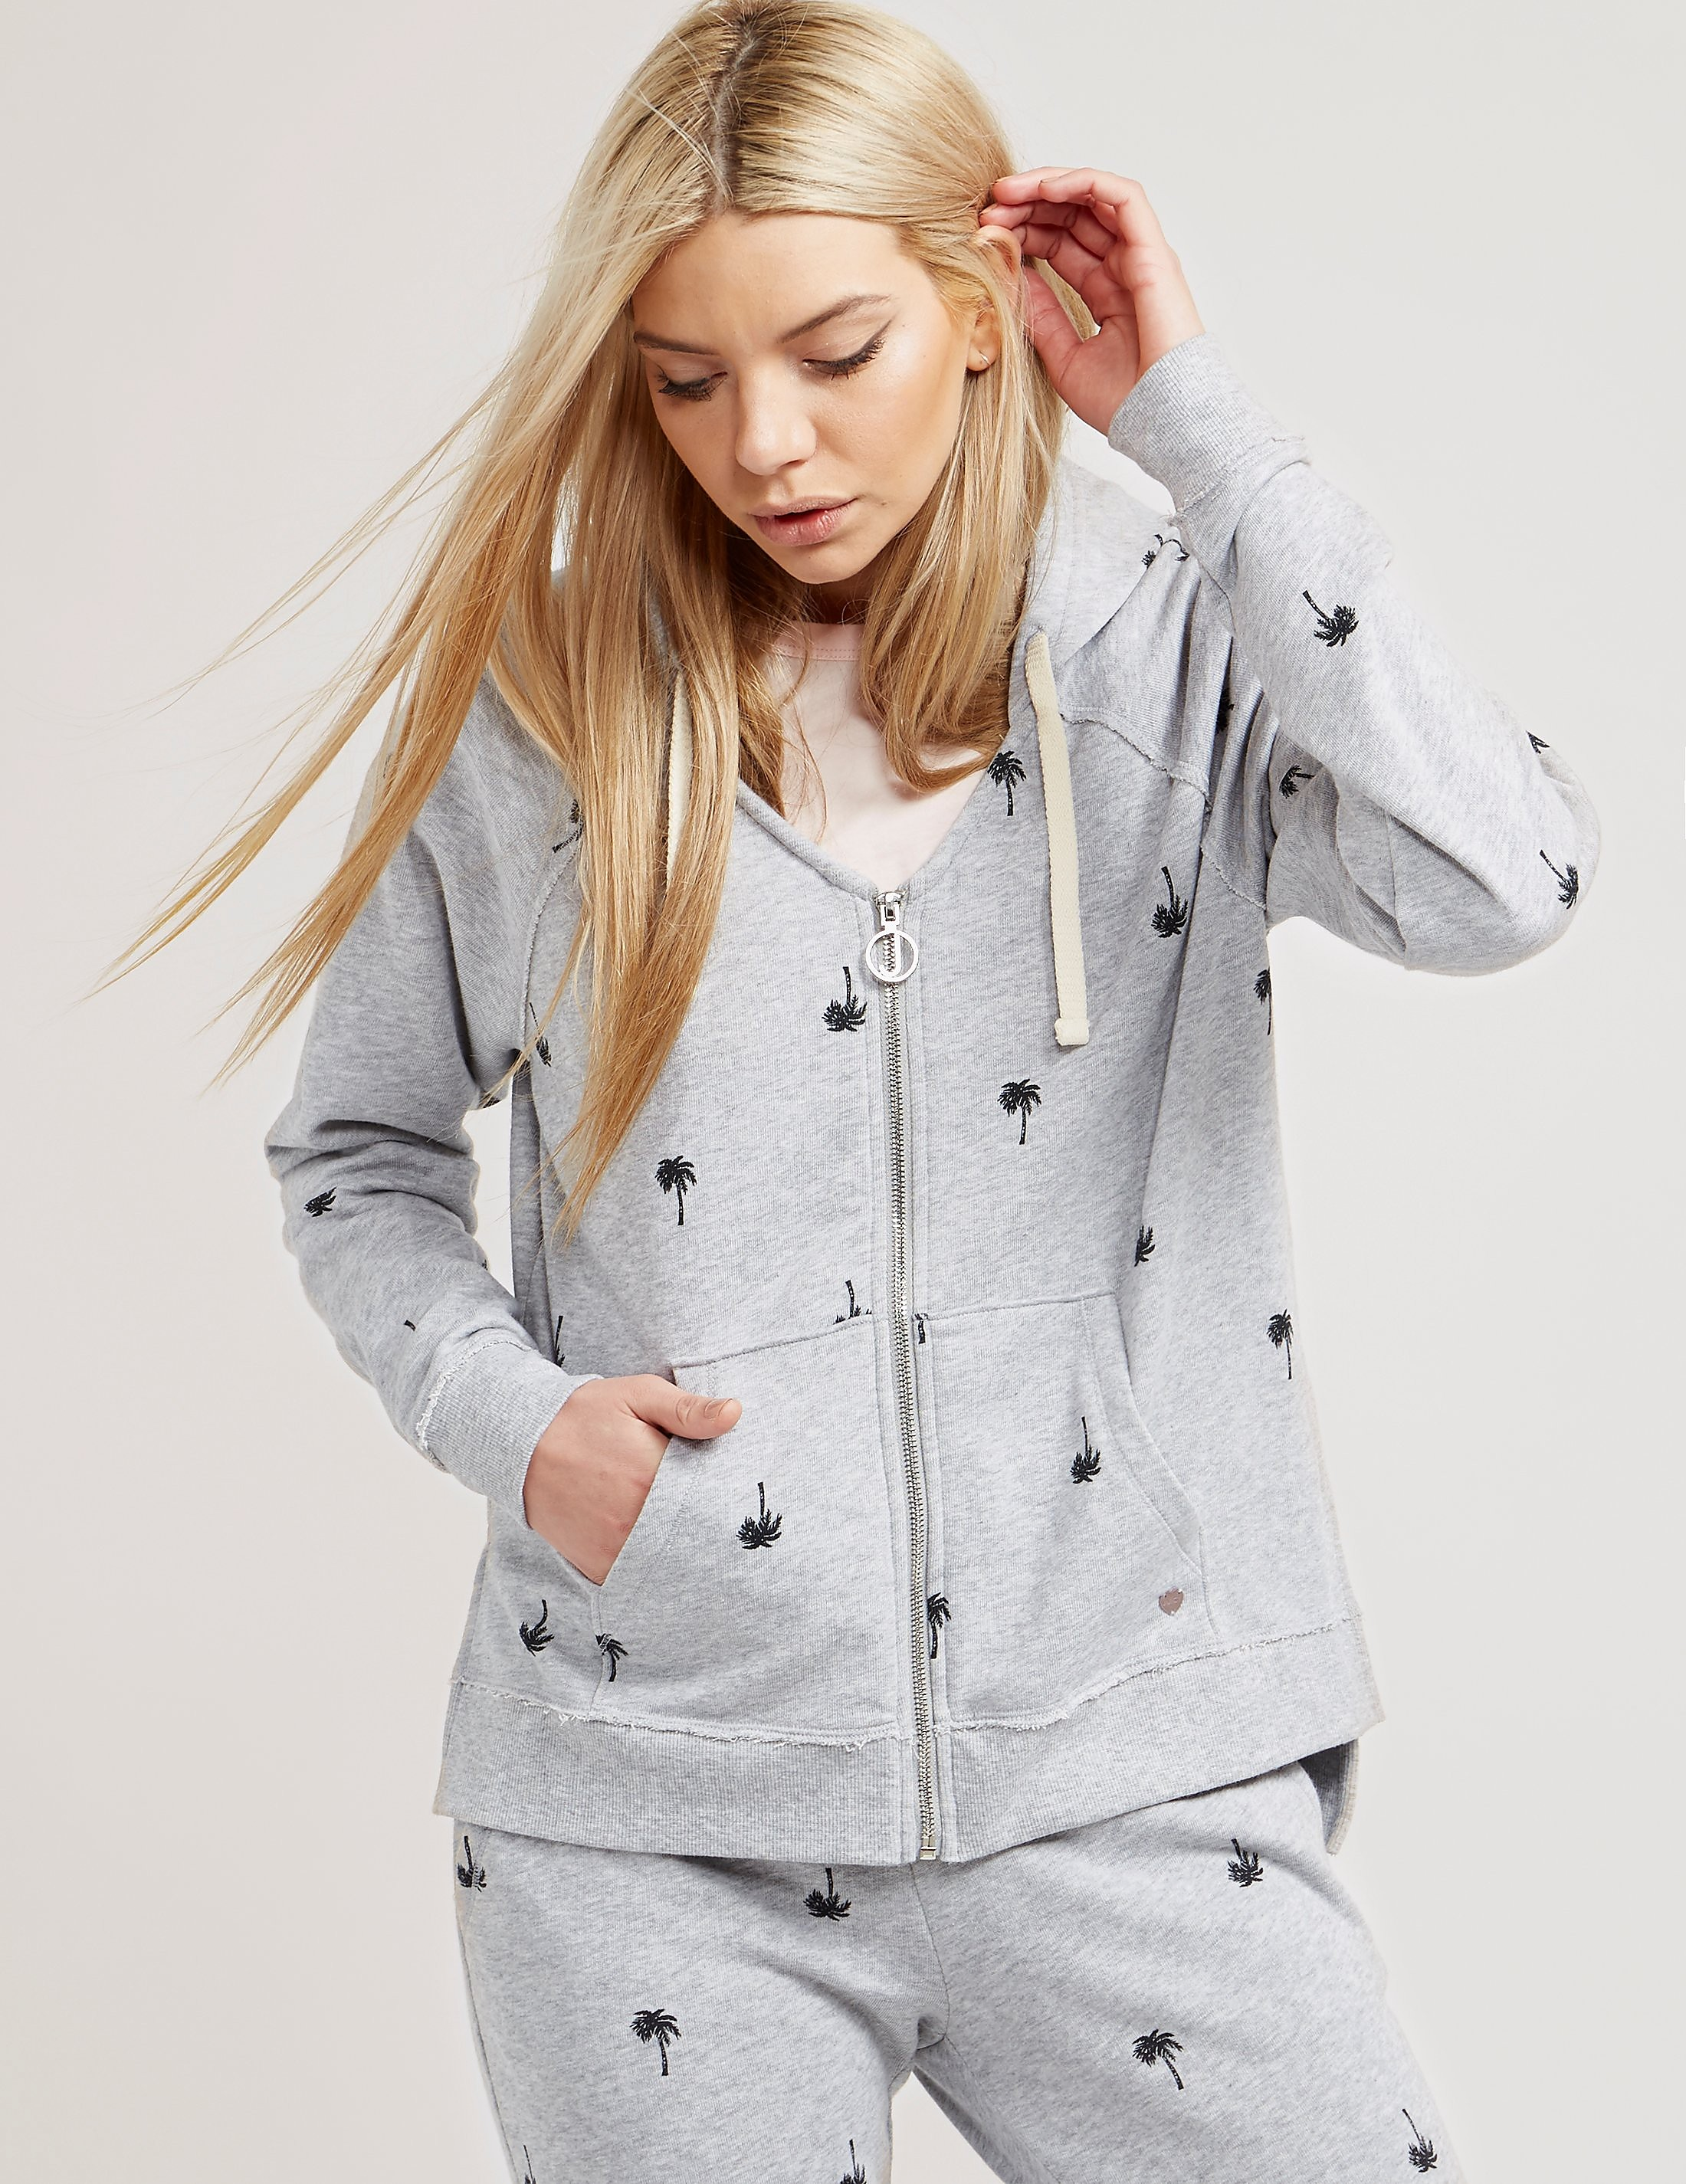 Juicy Couture Palm Tree Hoodie